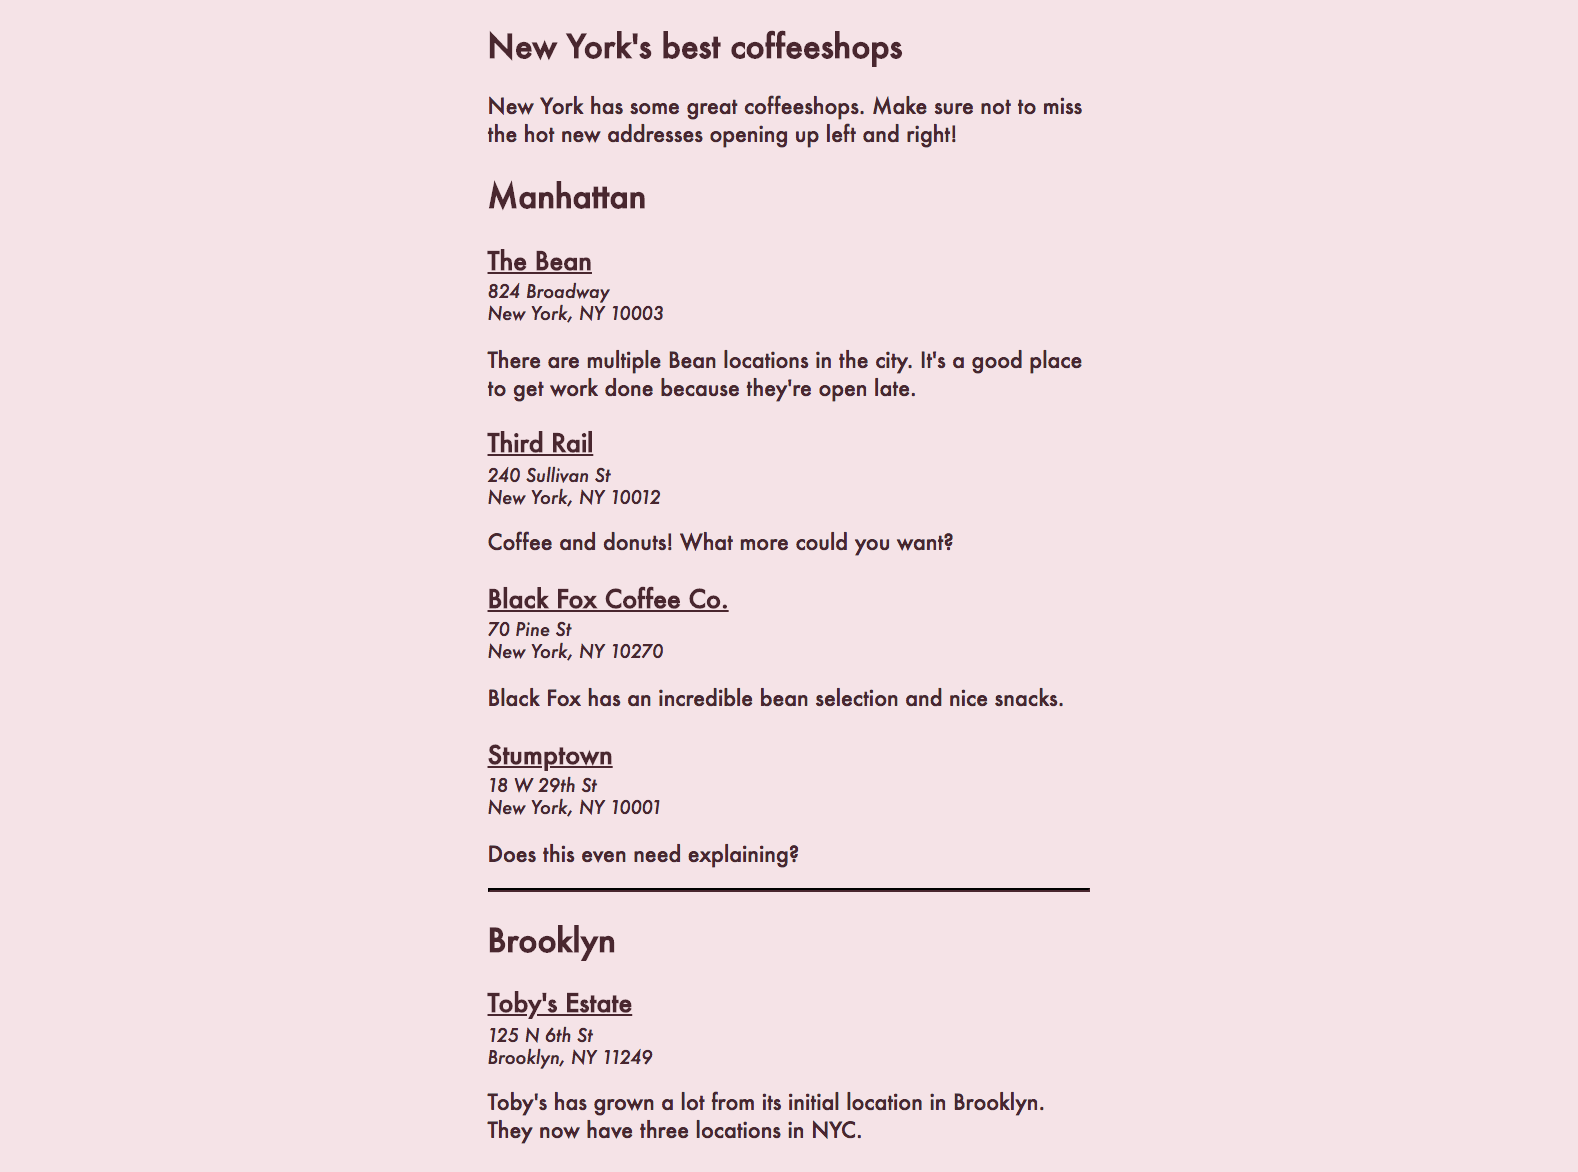 A web article with a light pink background about the coffeeshops of New York